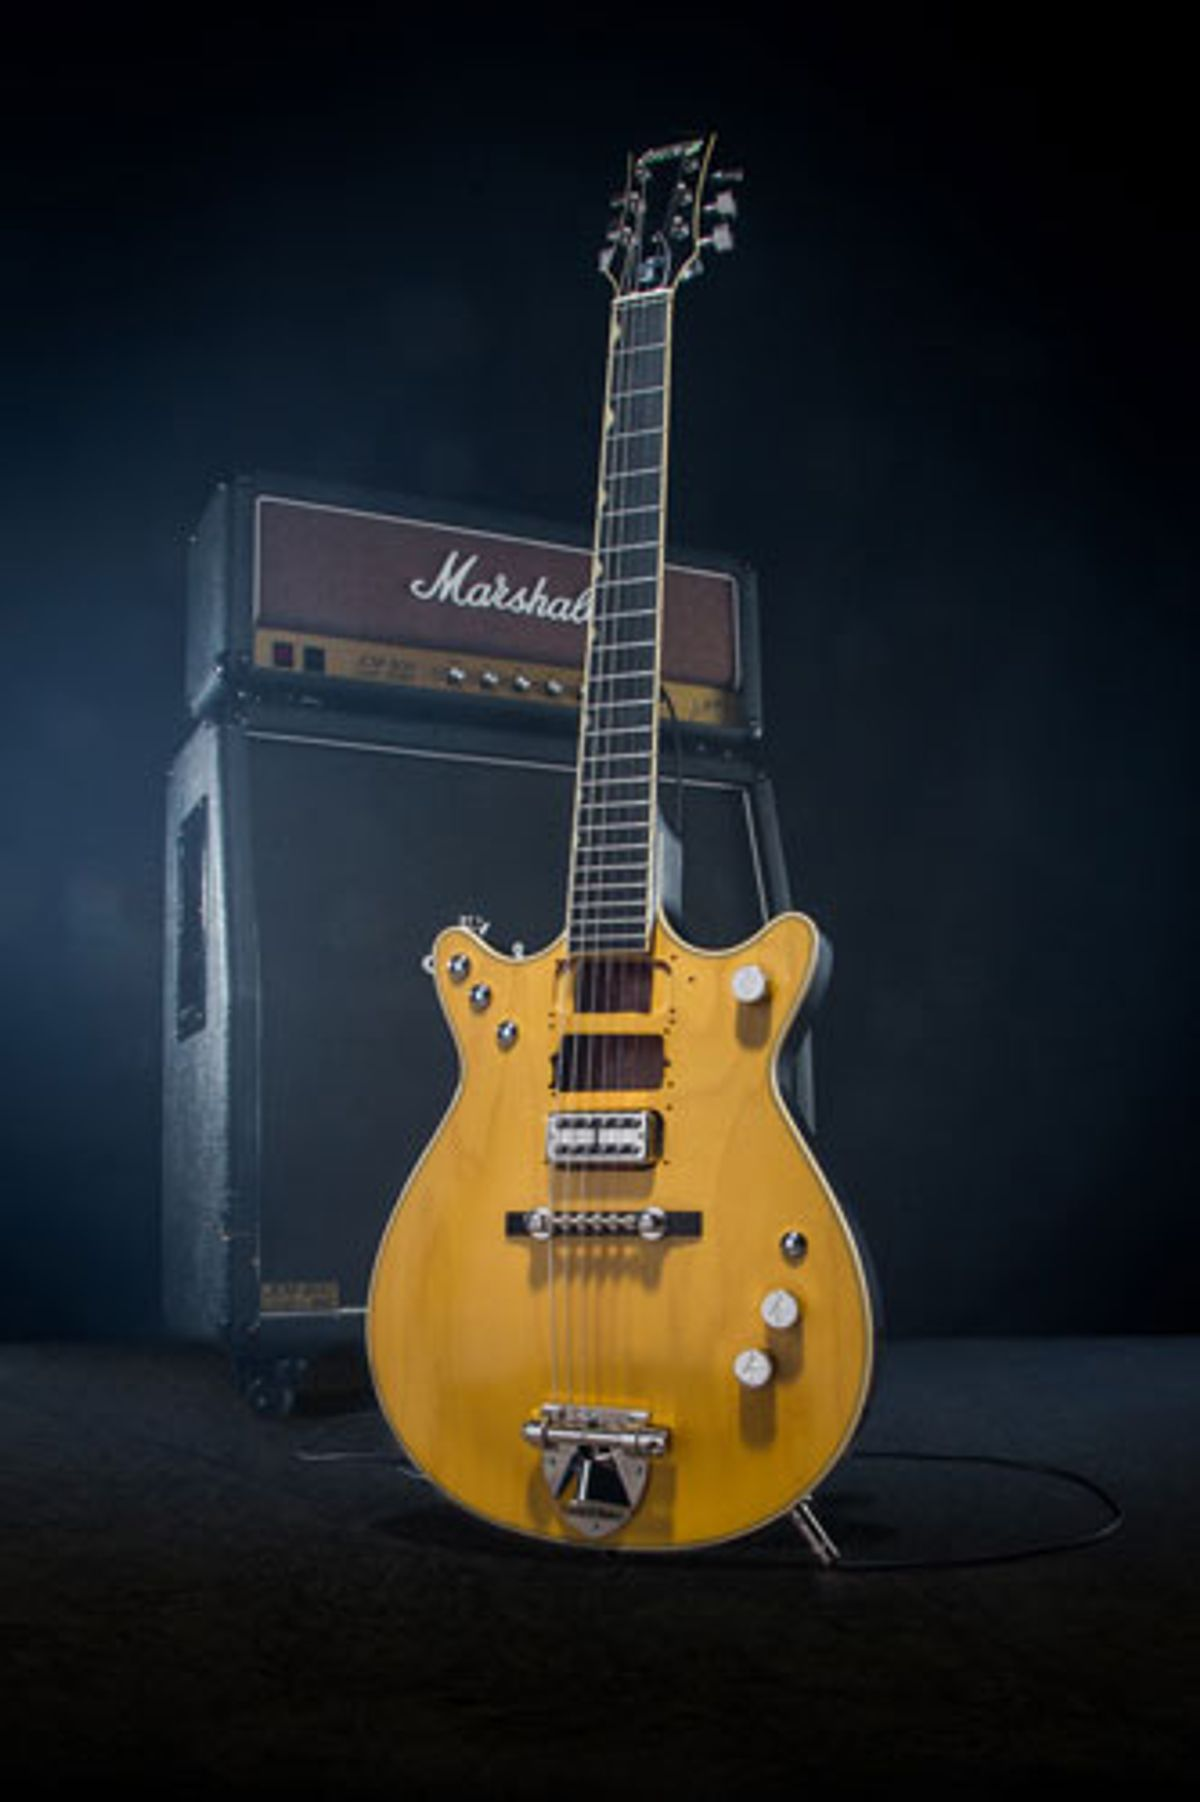 Gretsch Honors Malcolm Young with Signature Jet